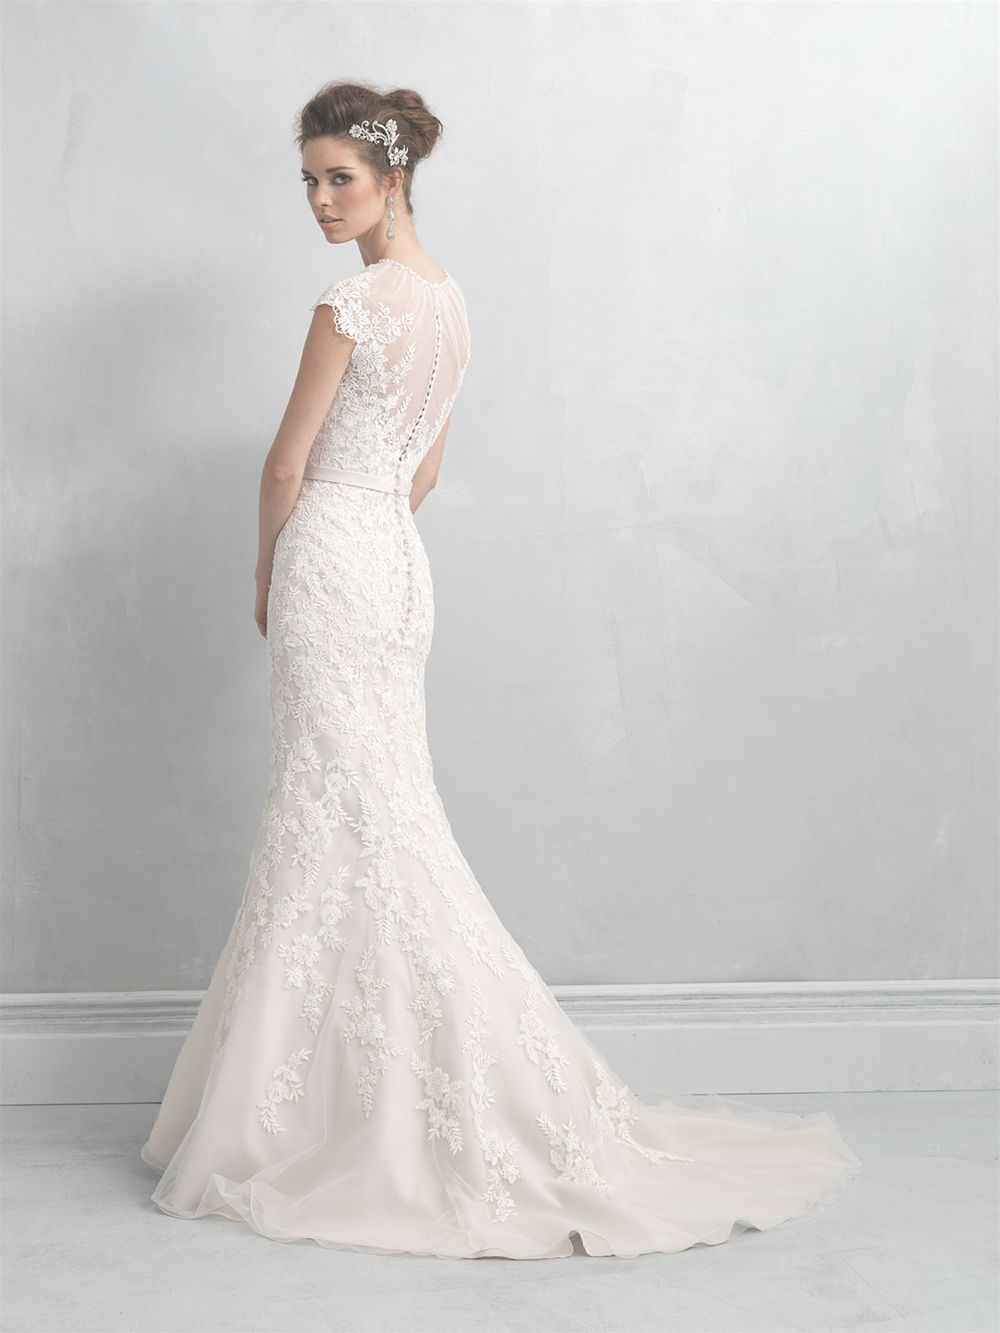 Allure bridals madison james collection style mj available